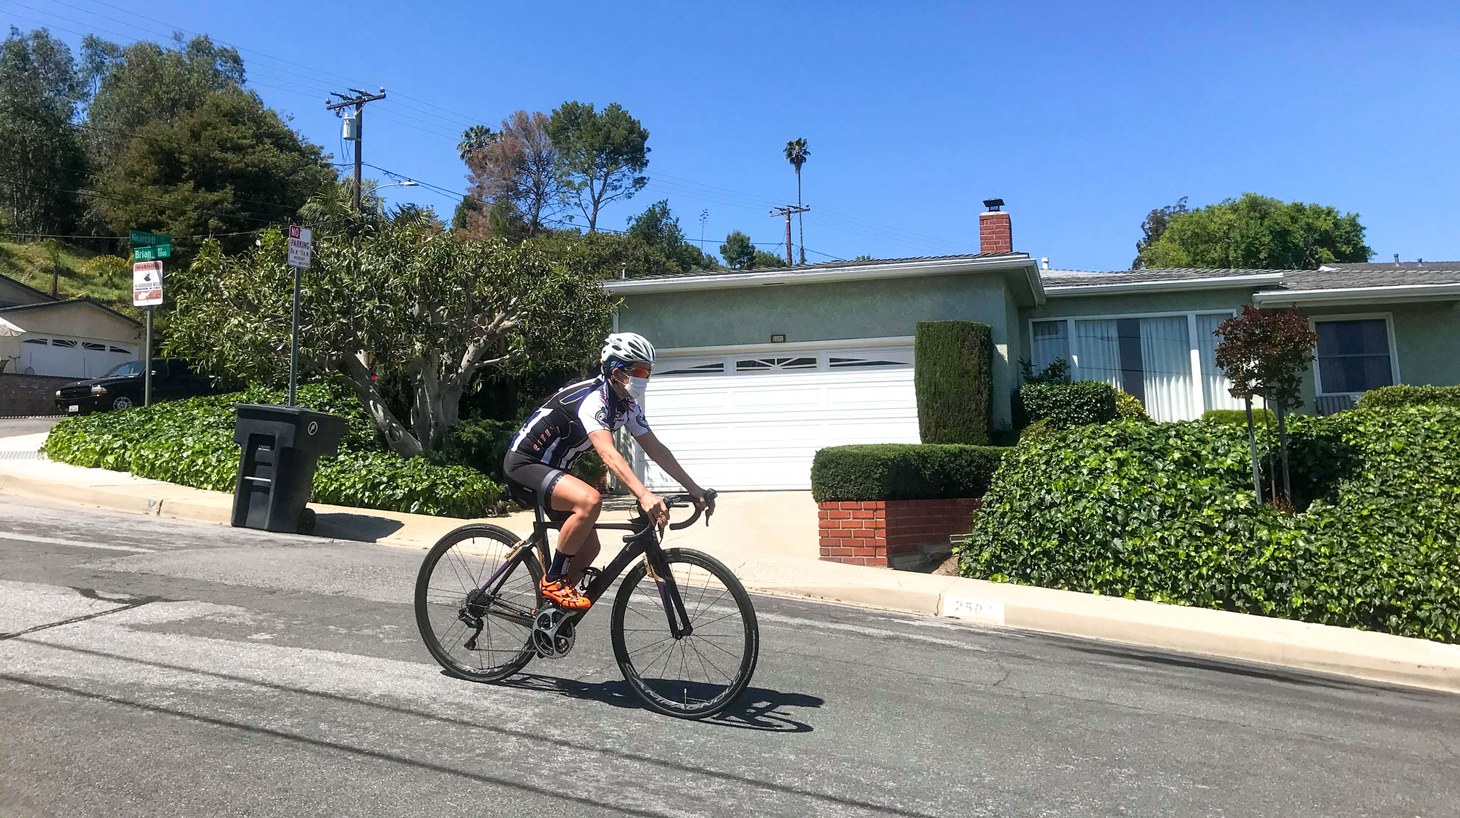 Some cyclists are now wearing masks when riding outside. You can probably be socially distant while exercising outdoors. But Paula Cannon, professor at the Keck School of Medicine at USC, says a mask signals that you care about your neighbors just as much as yourself.